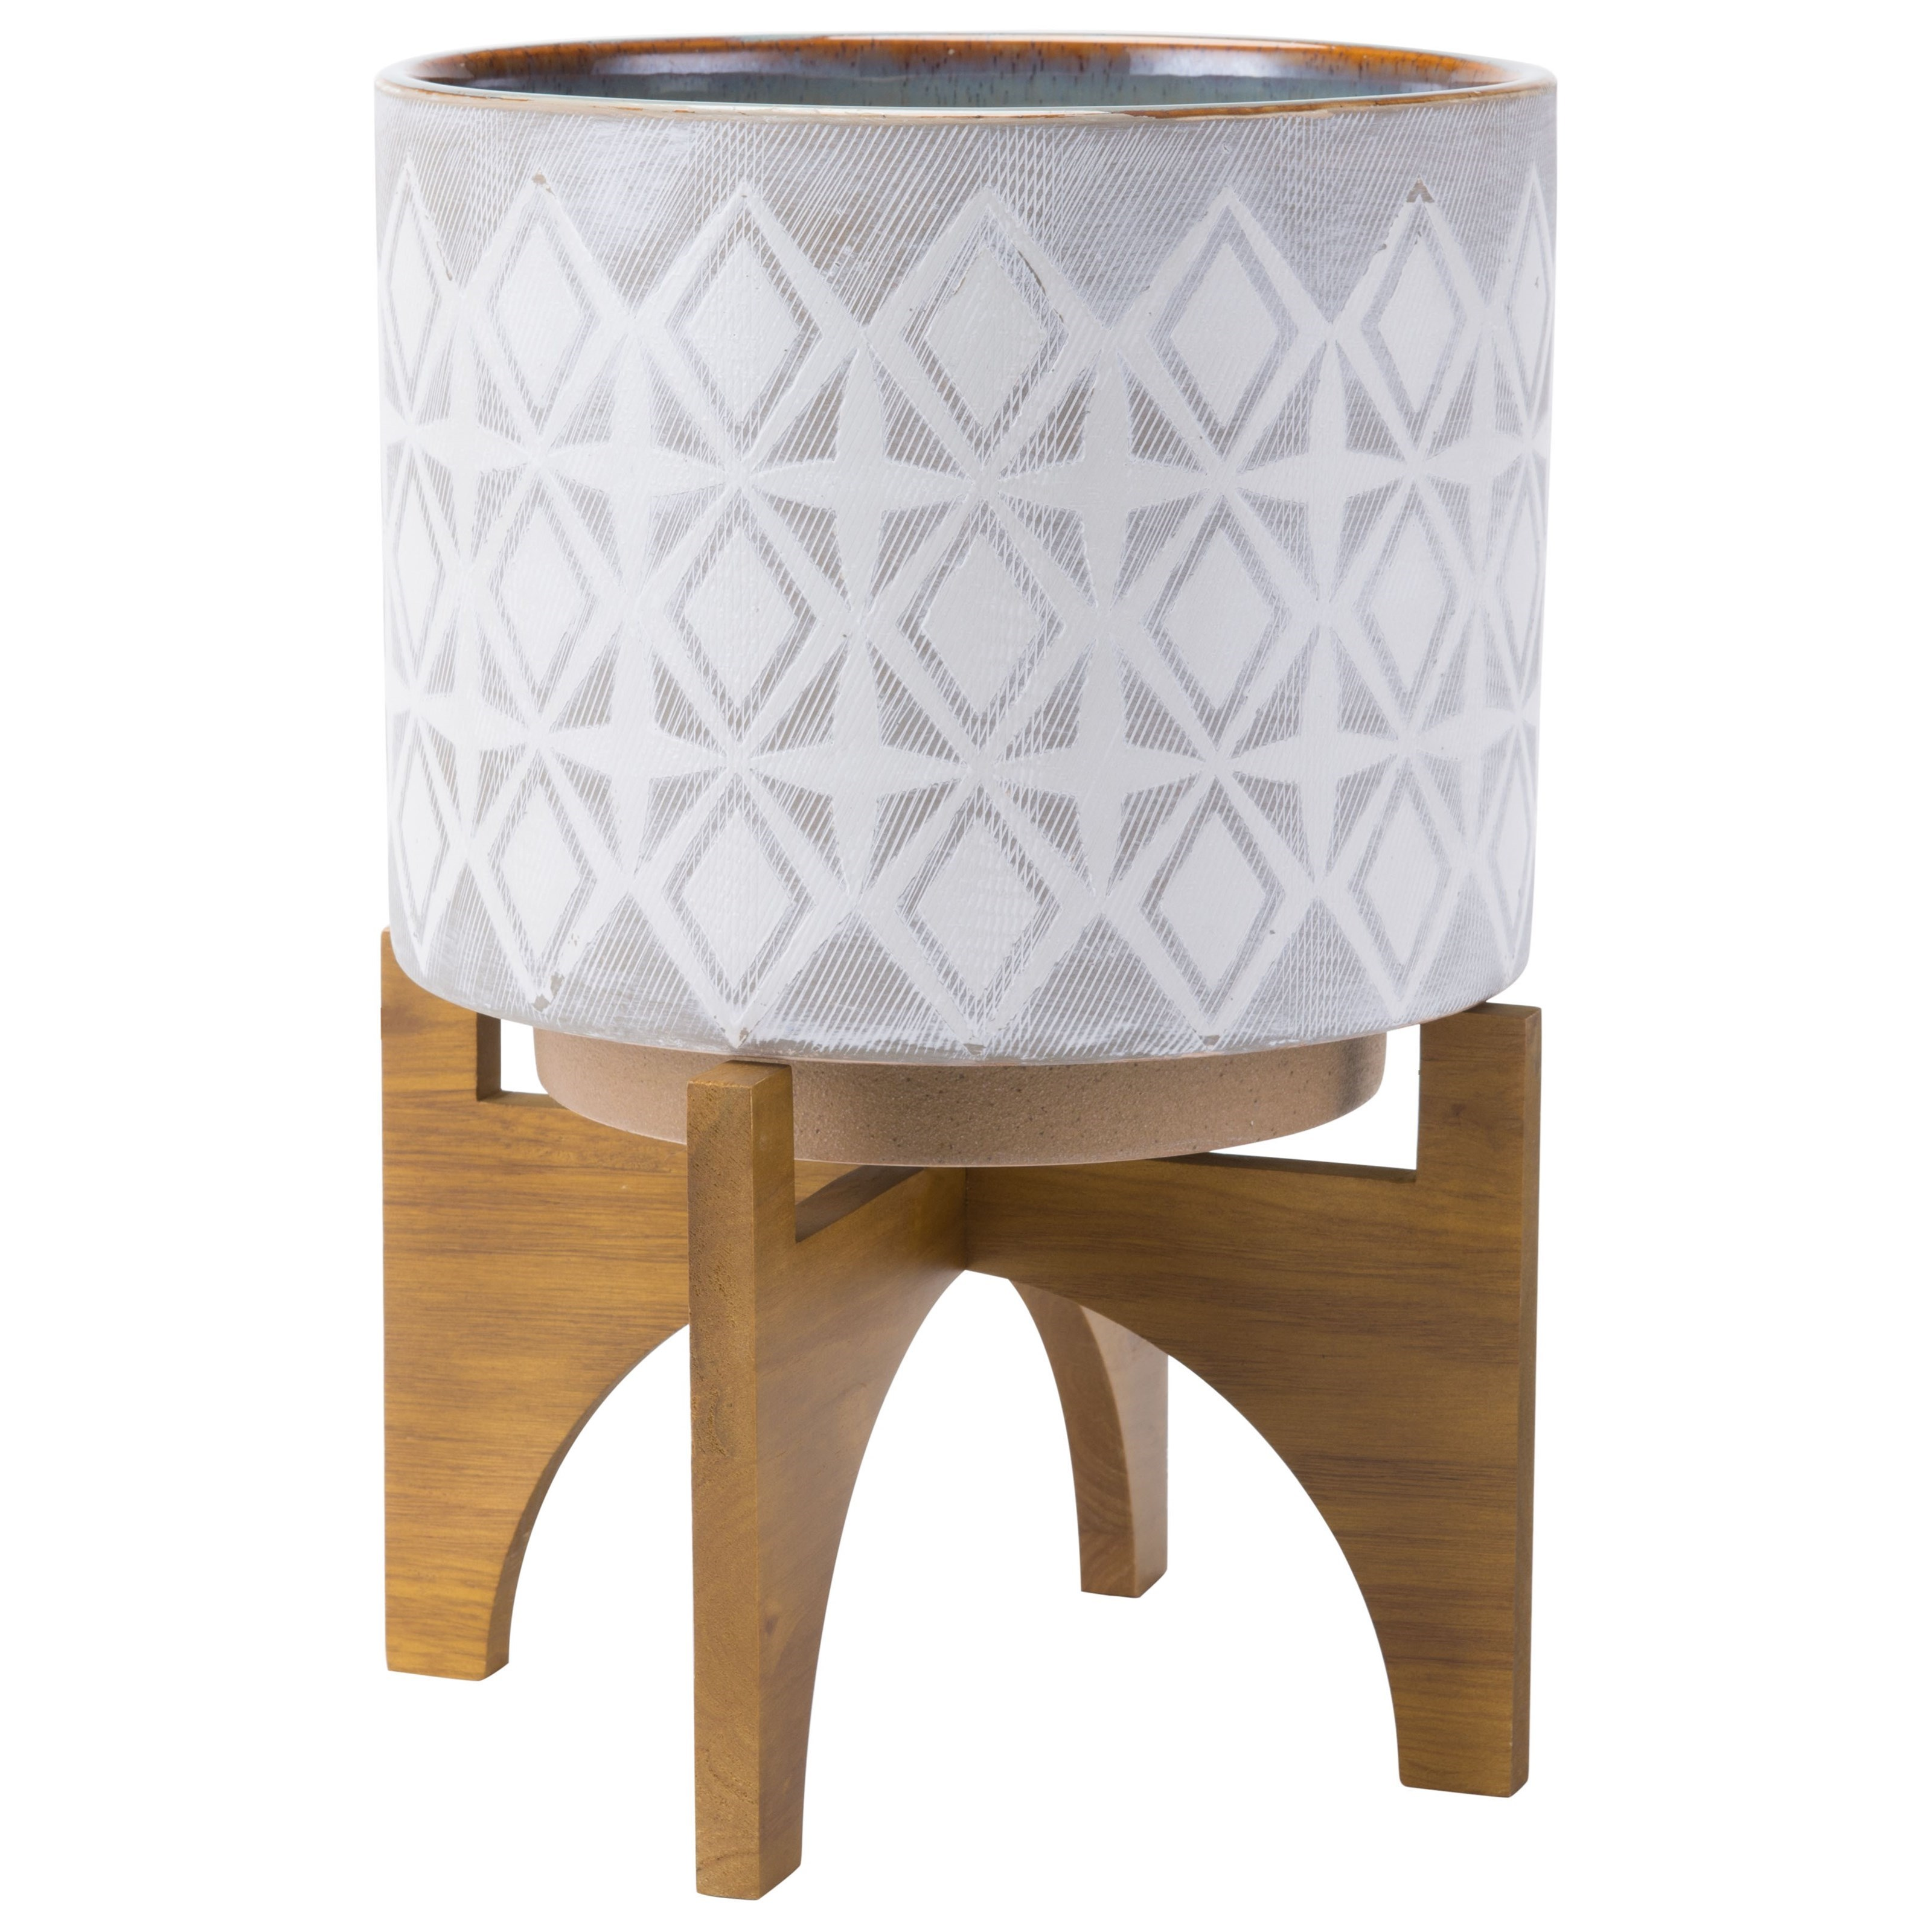 Planters Planter with Wooden Base Large by Zuo at Nassau Furniture and Mattress